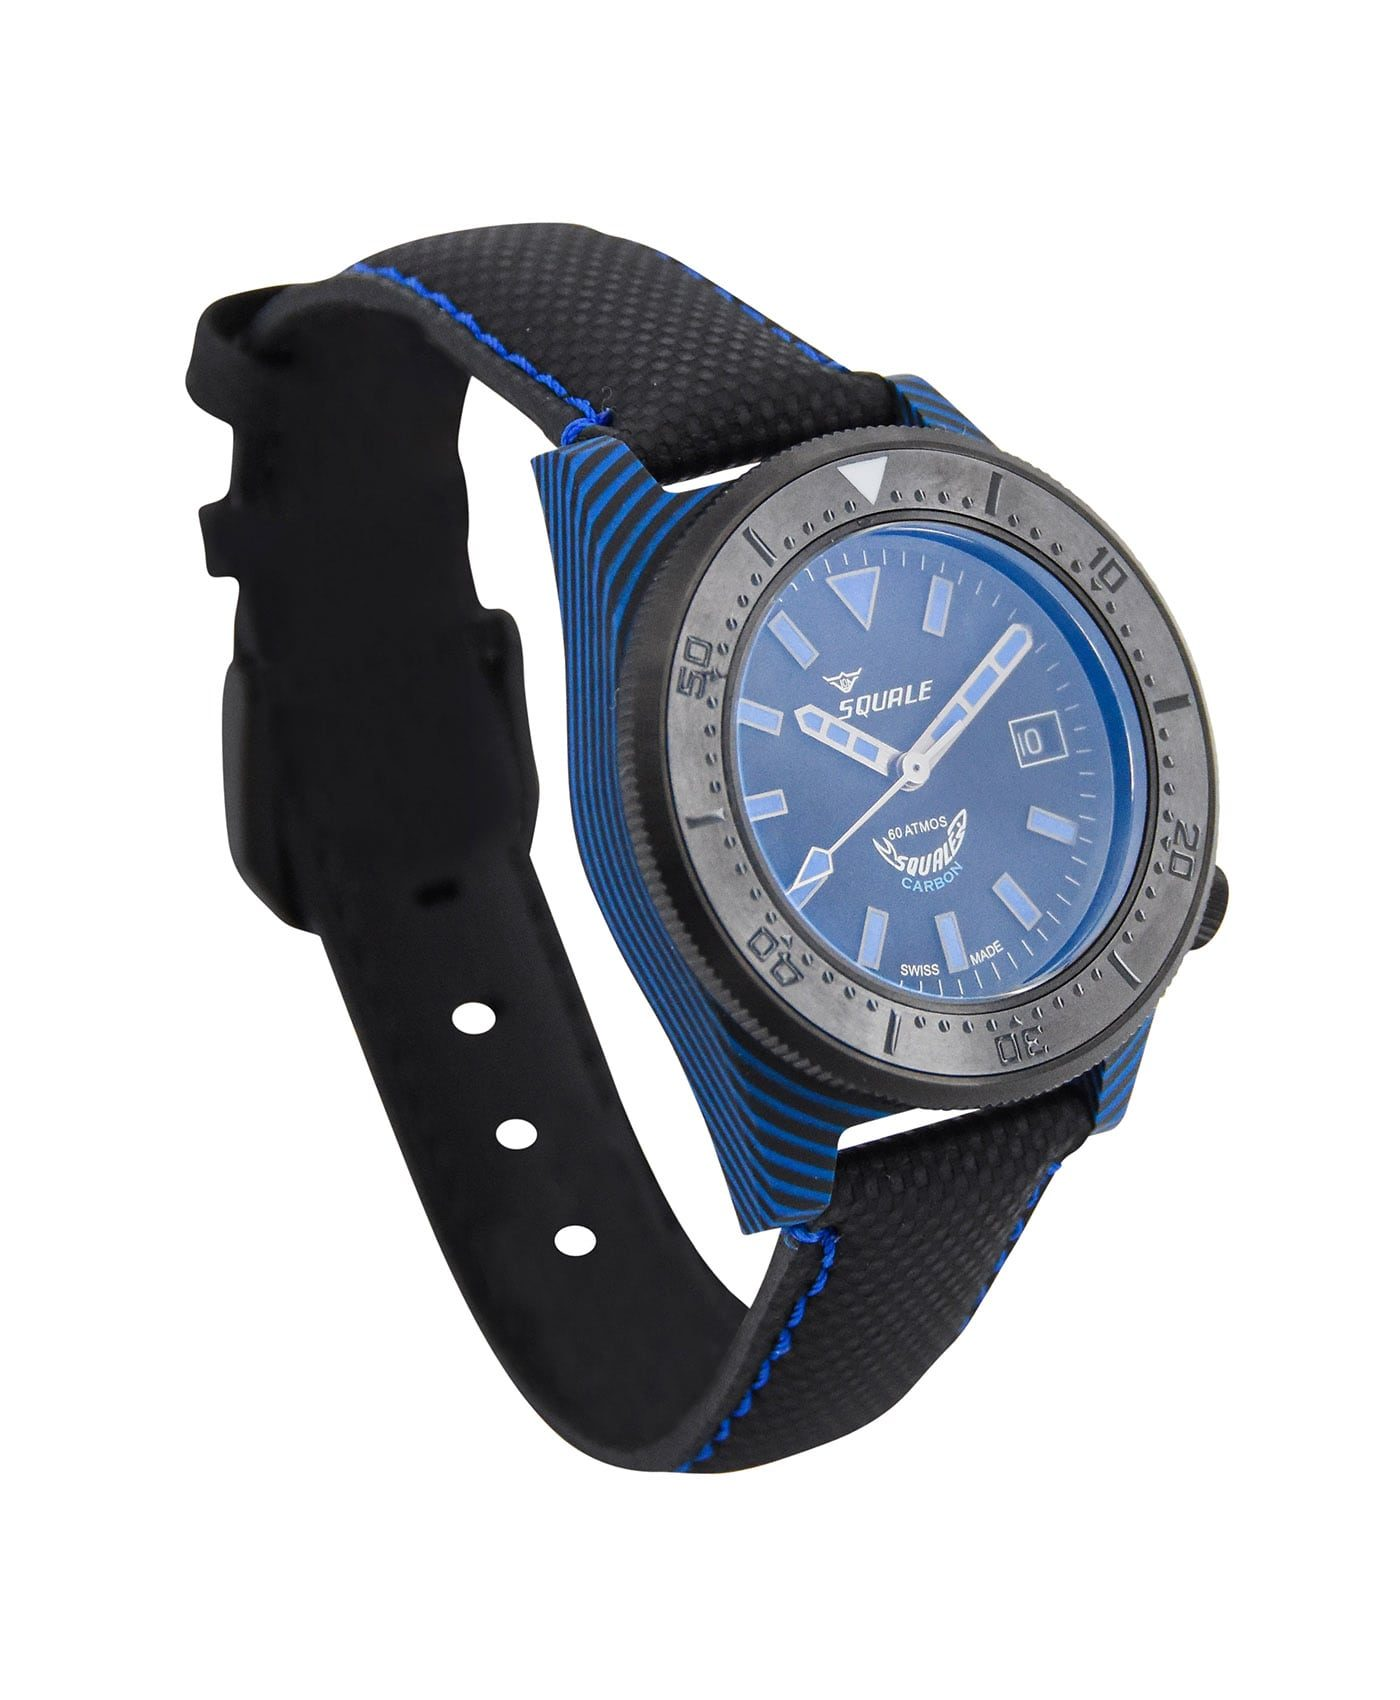 Squale T183 Diver blue black carbon fiber case left side